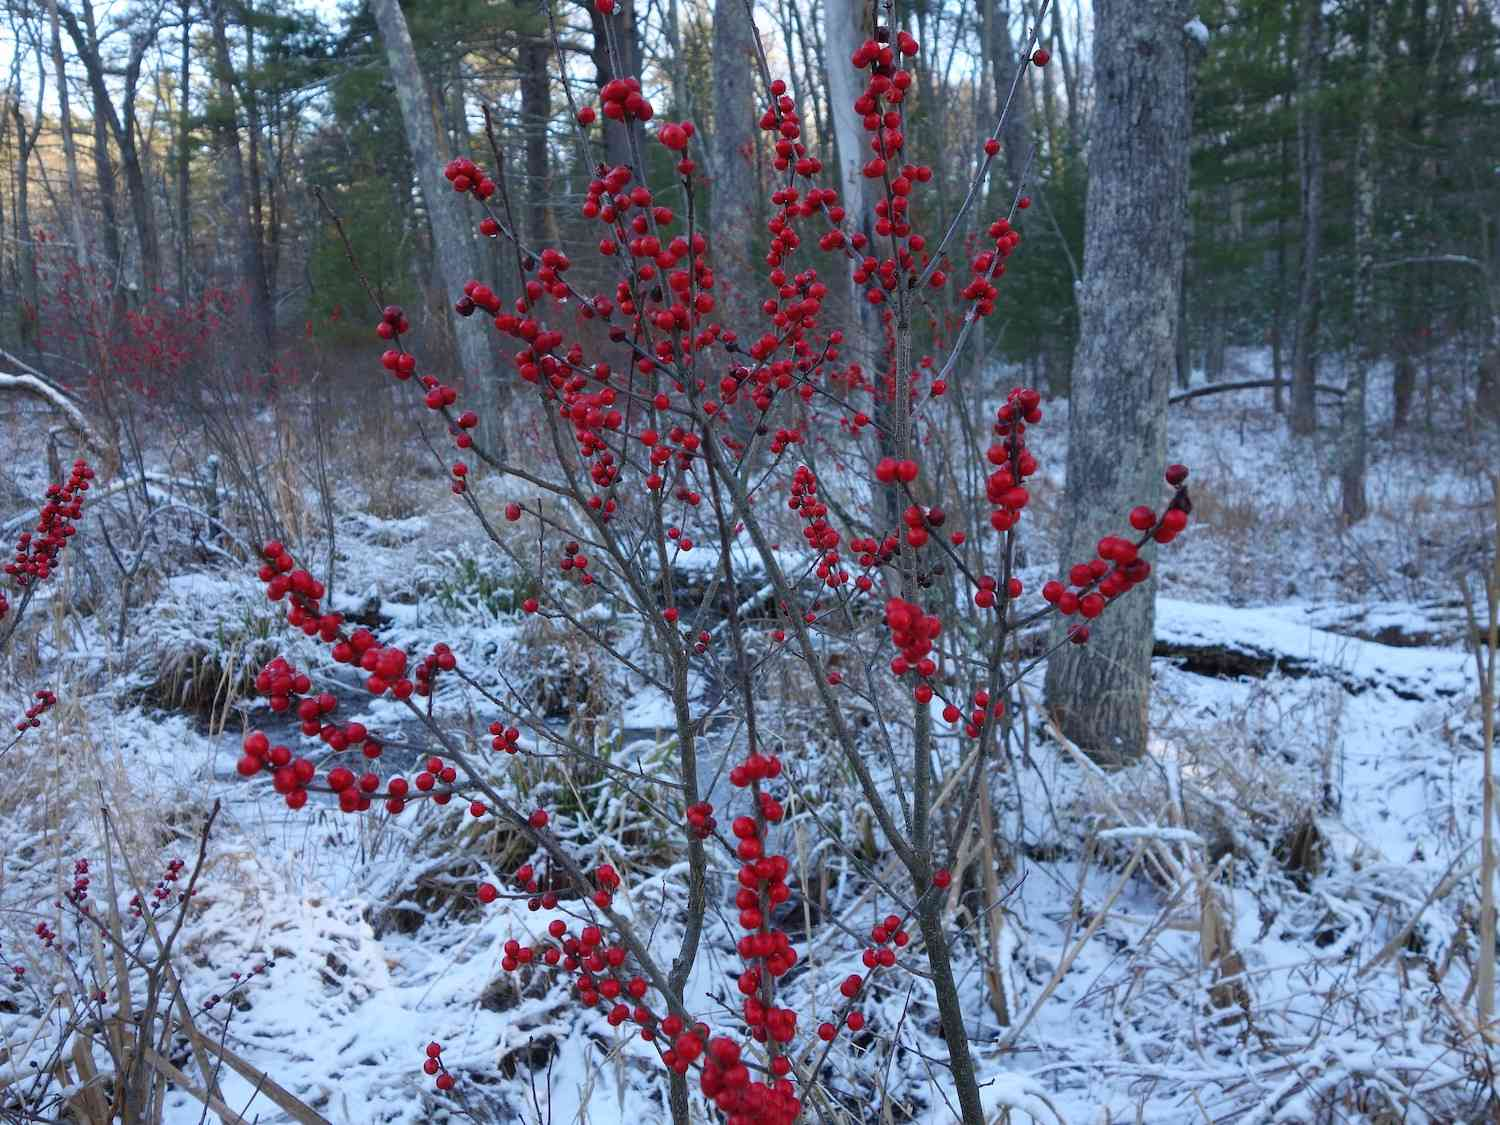 Bright red stalks of winterberry fruit against a snowy winter woodland